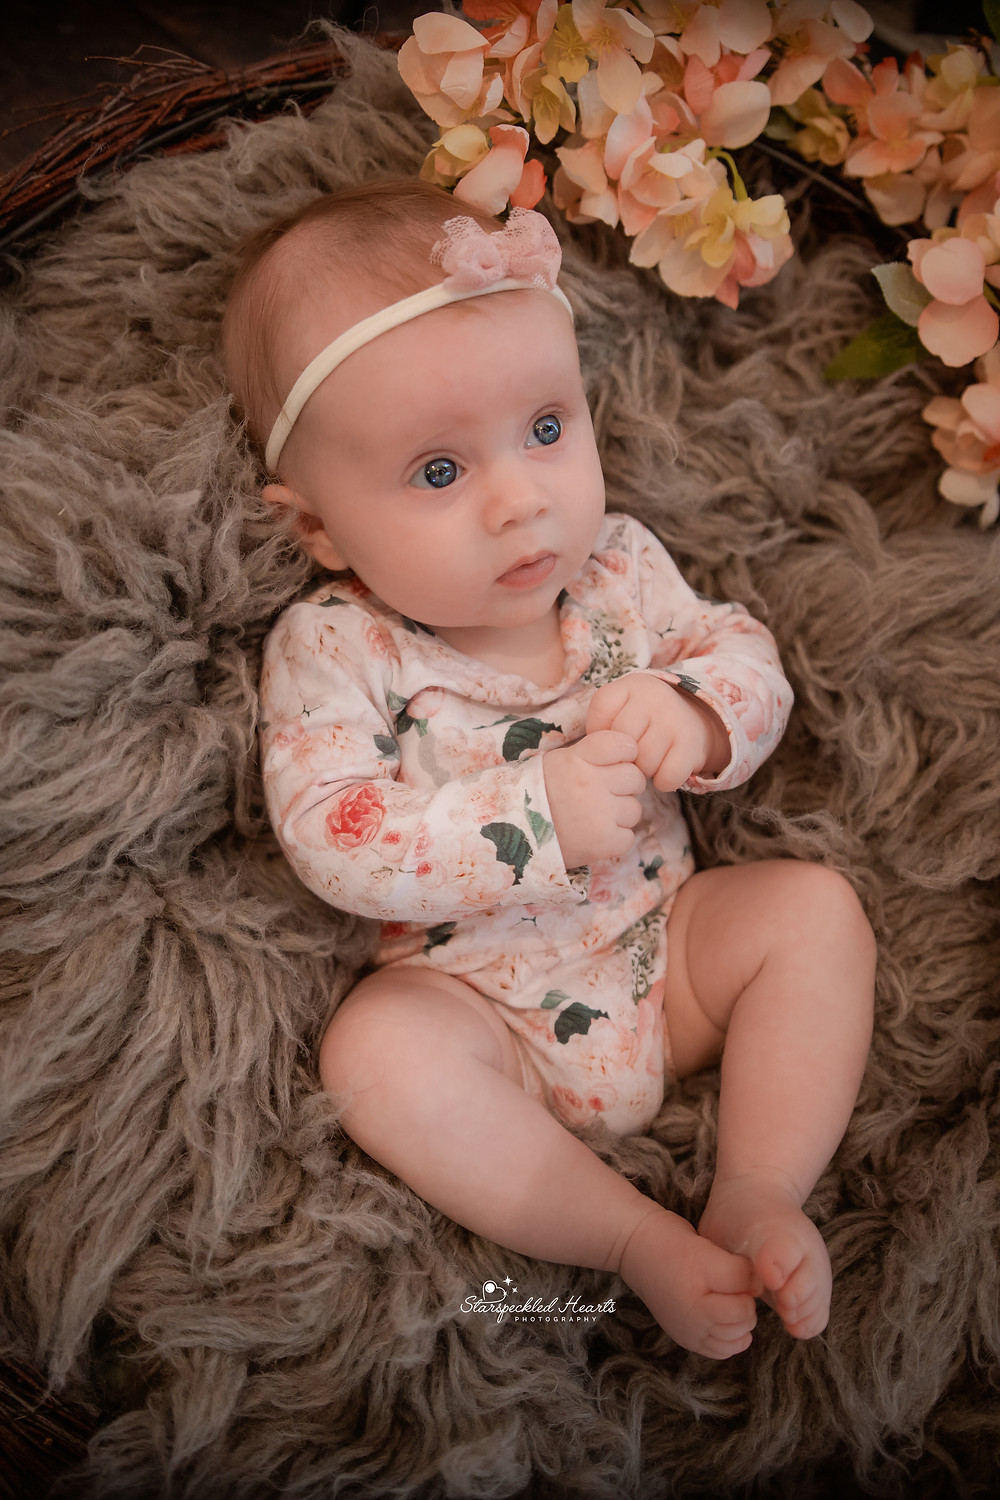 cute baby girl wearing a floral romper